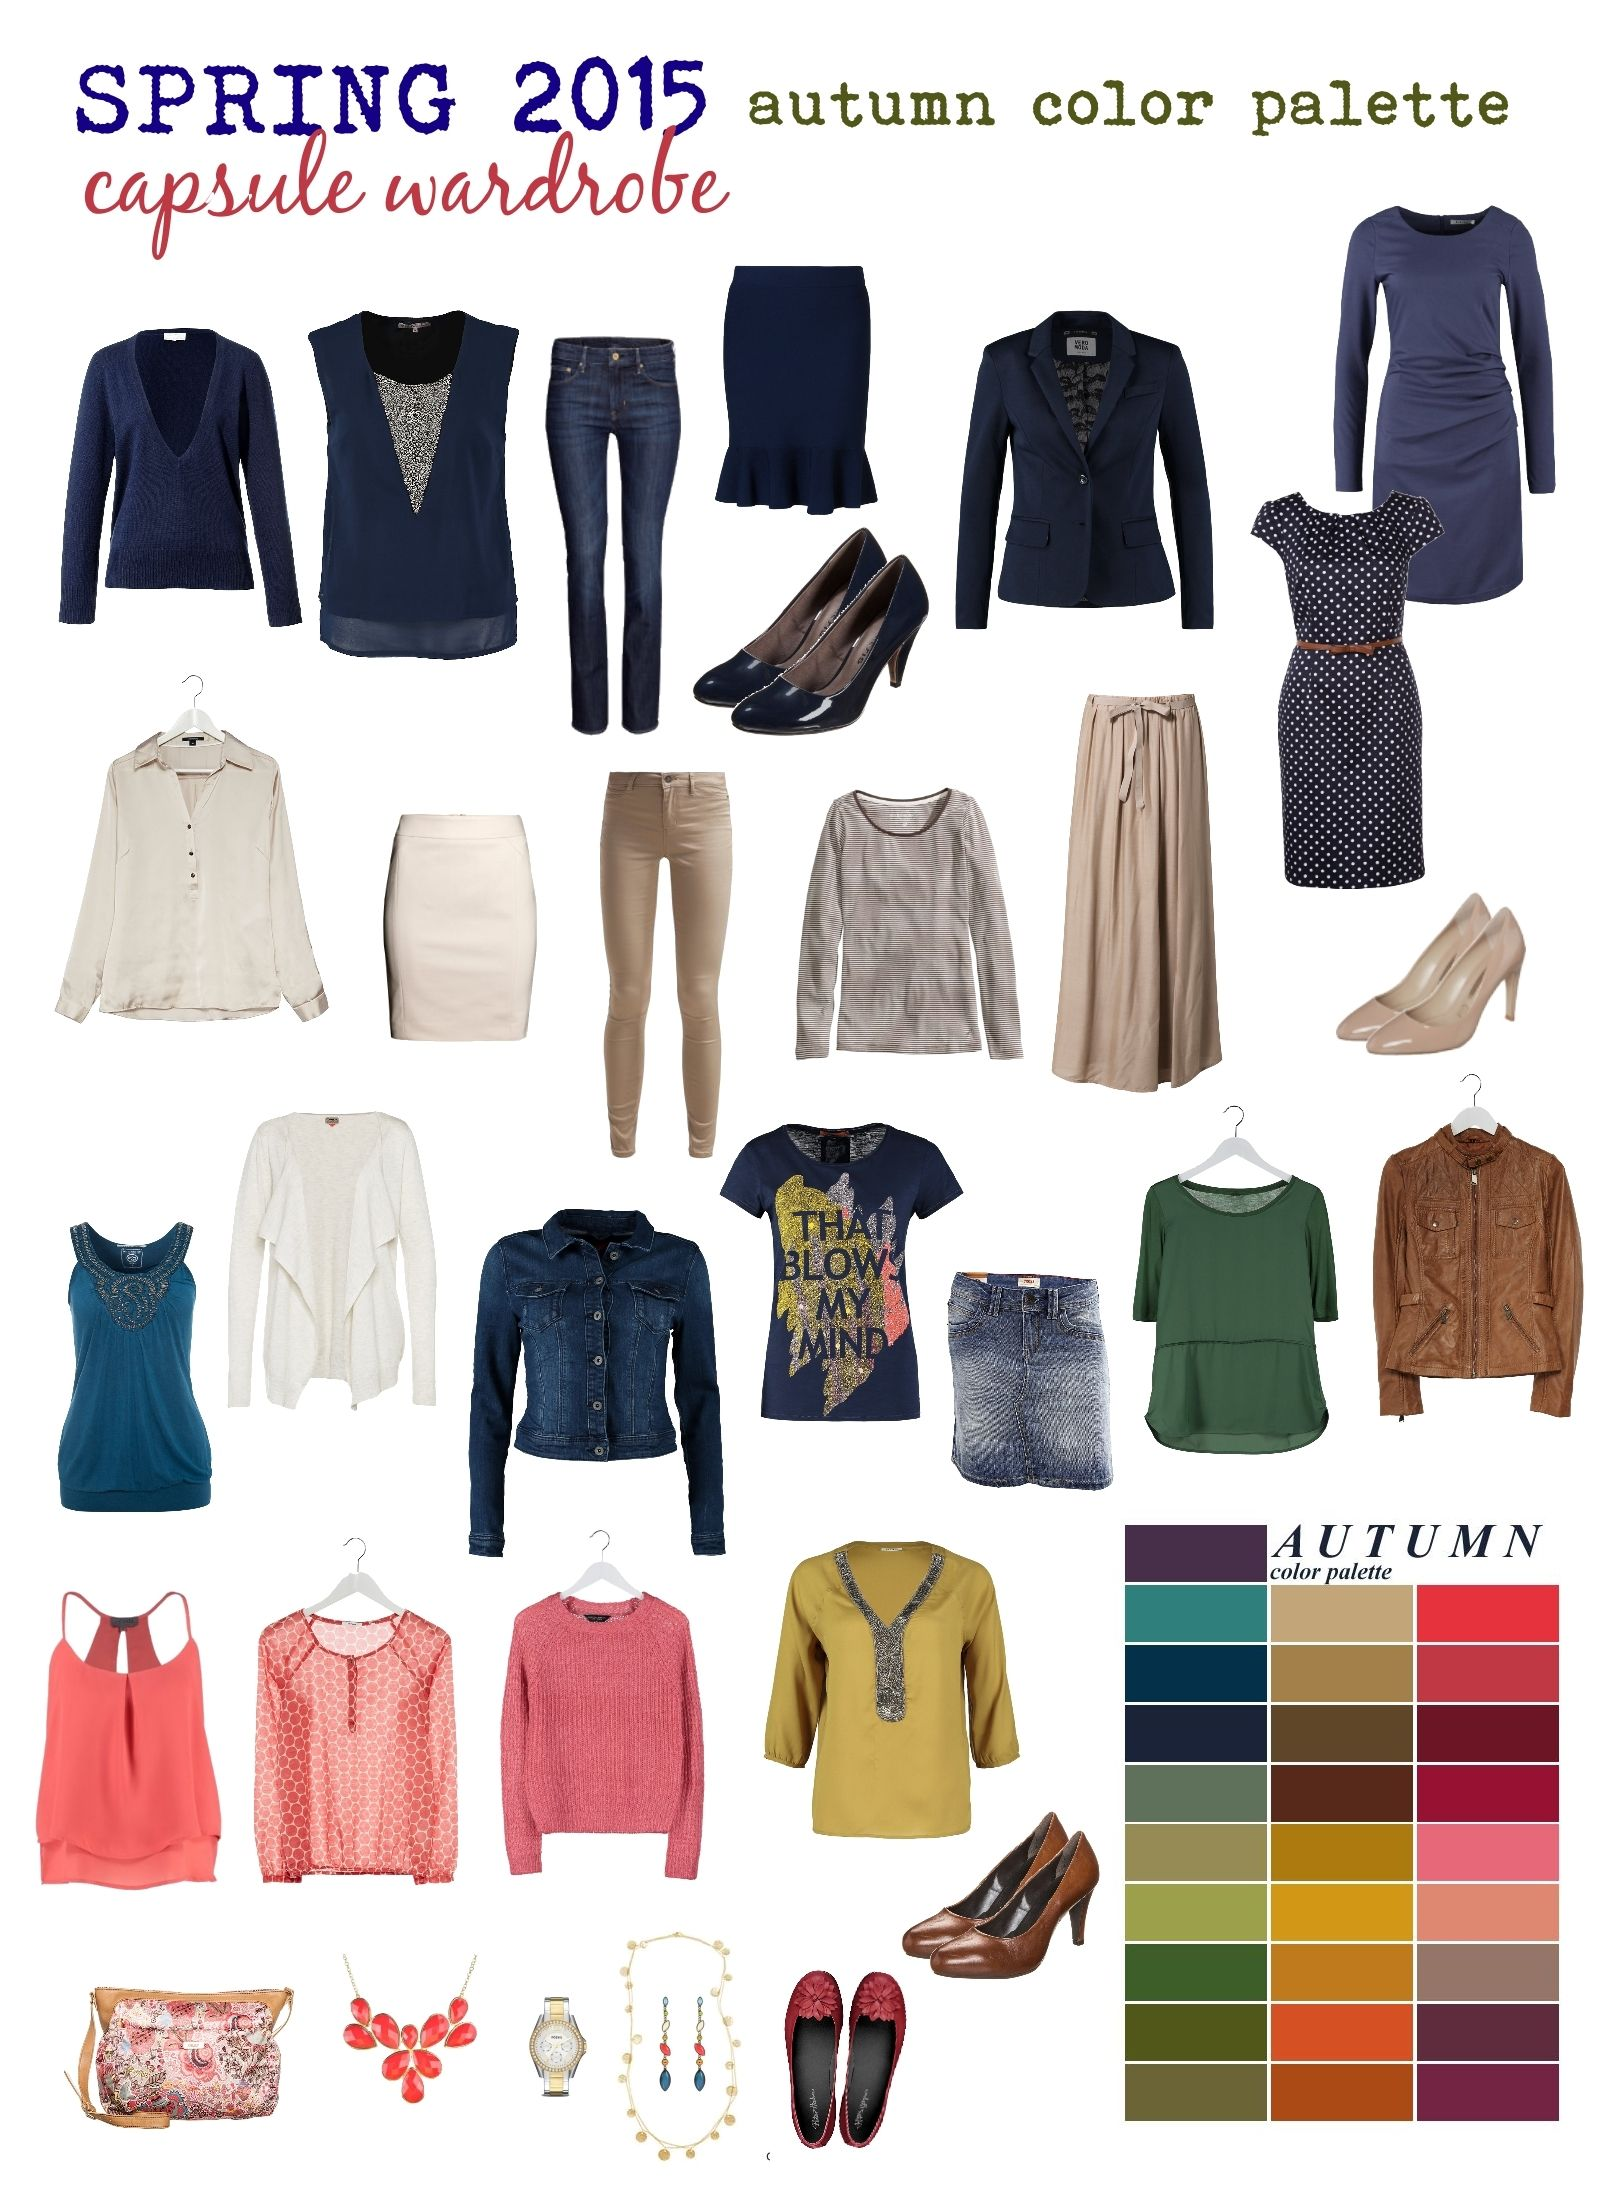 Capsule Wardrobe In Fallautumn Colors For Spring )  Navy,